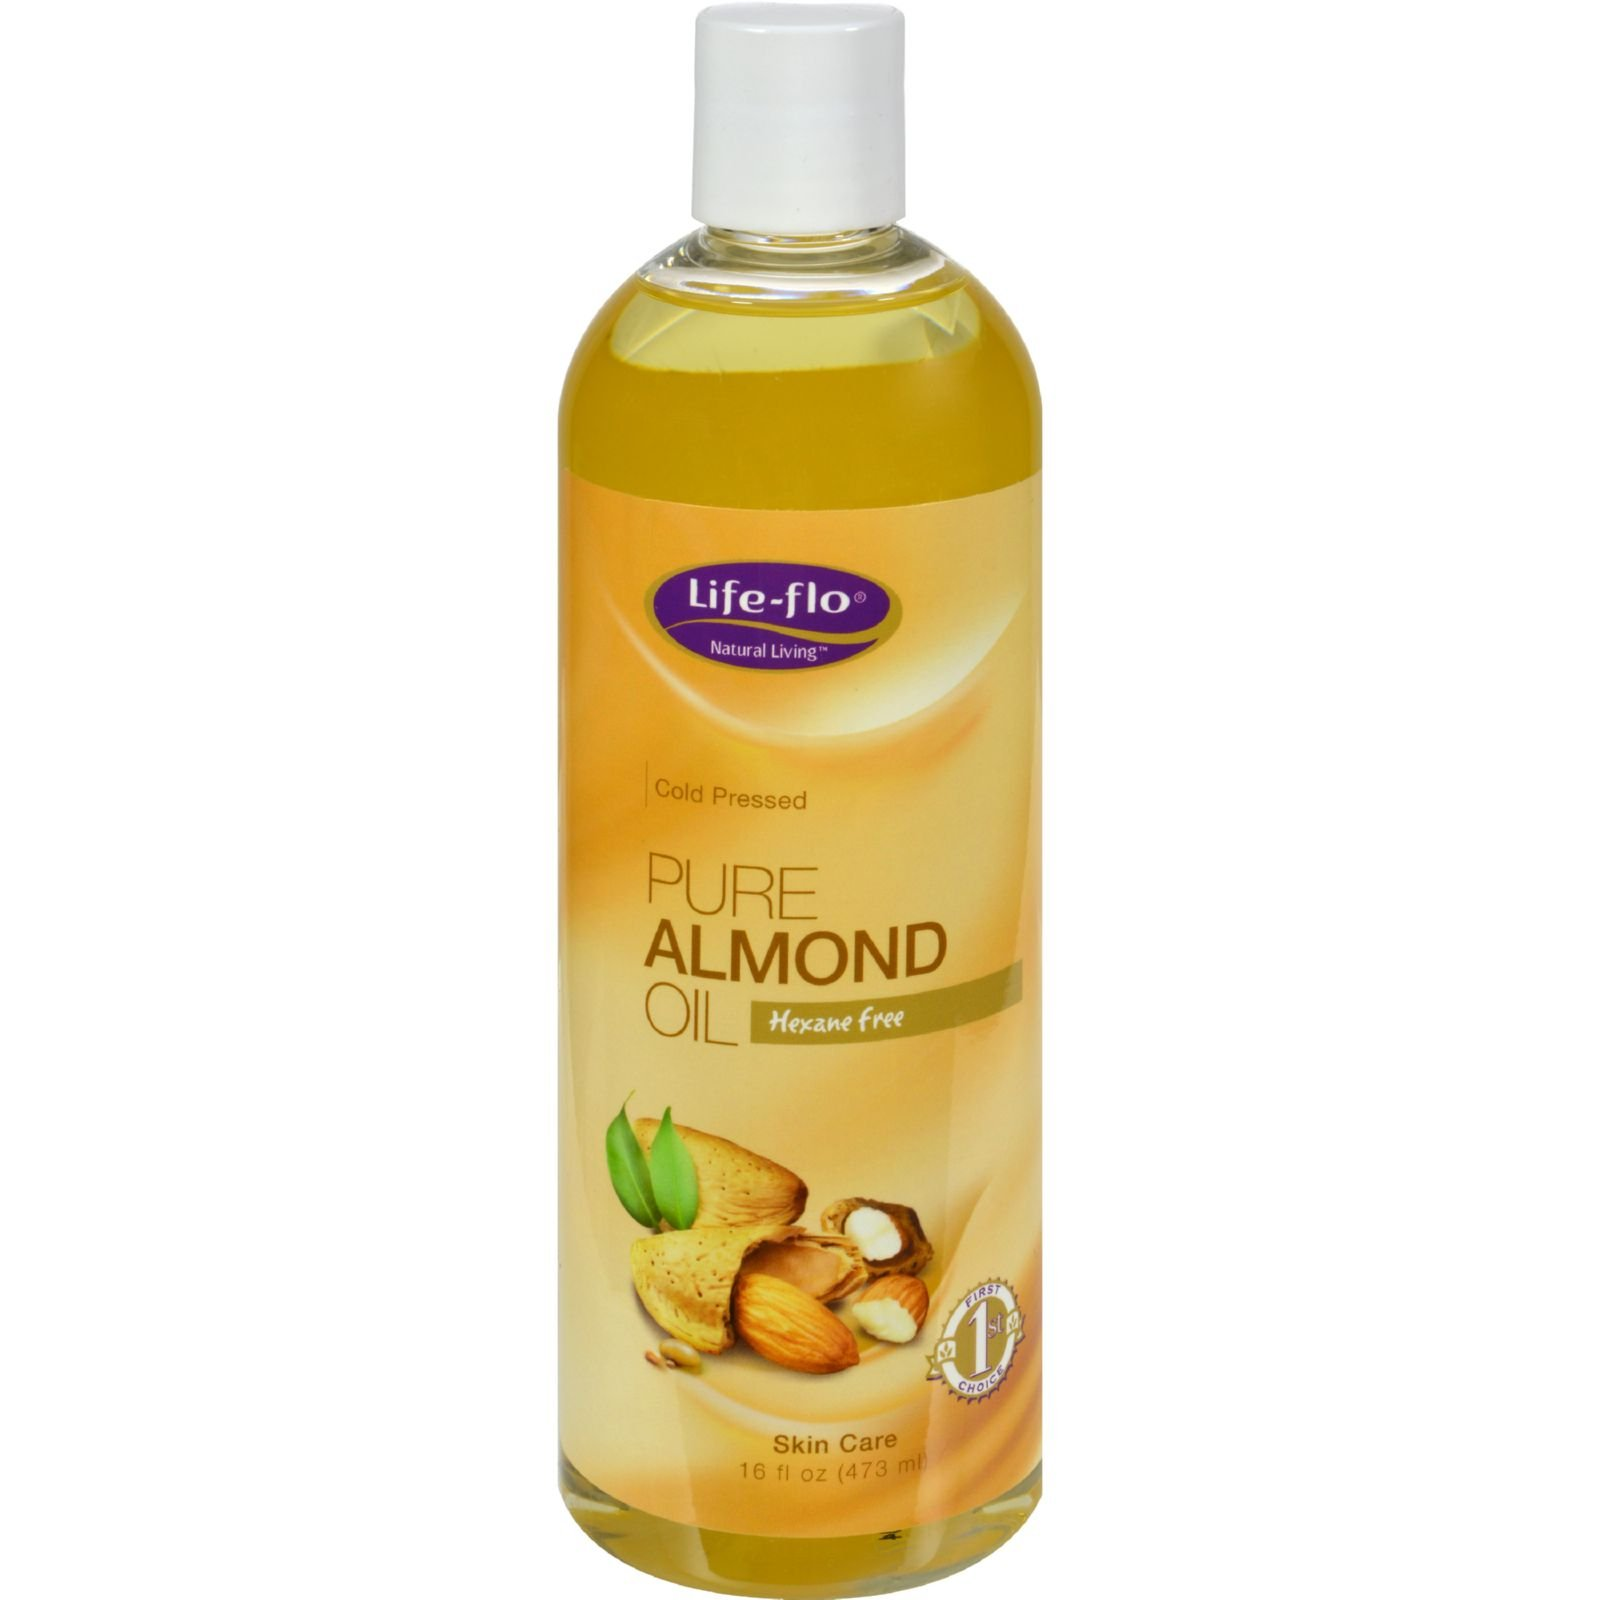 2Pack! Life-Flo Pure Almond Oil - 16 fl oz